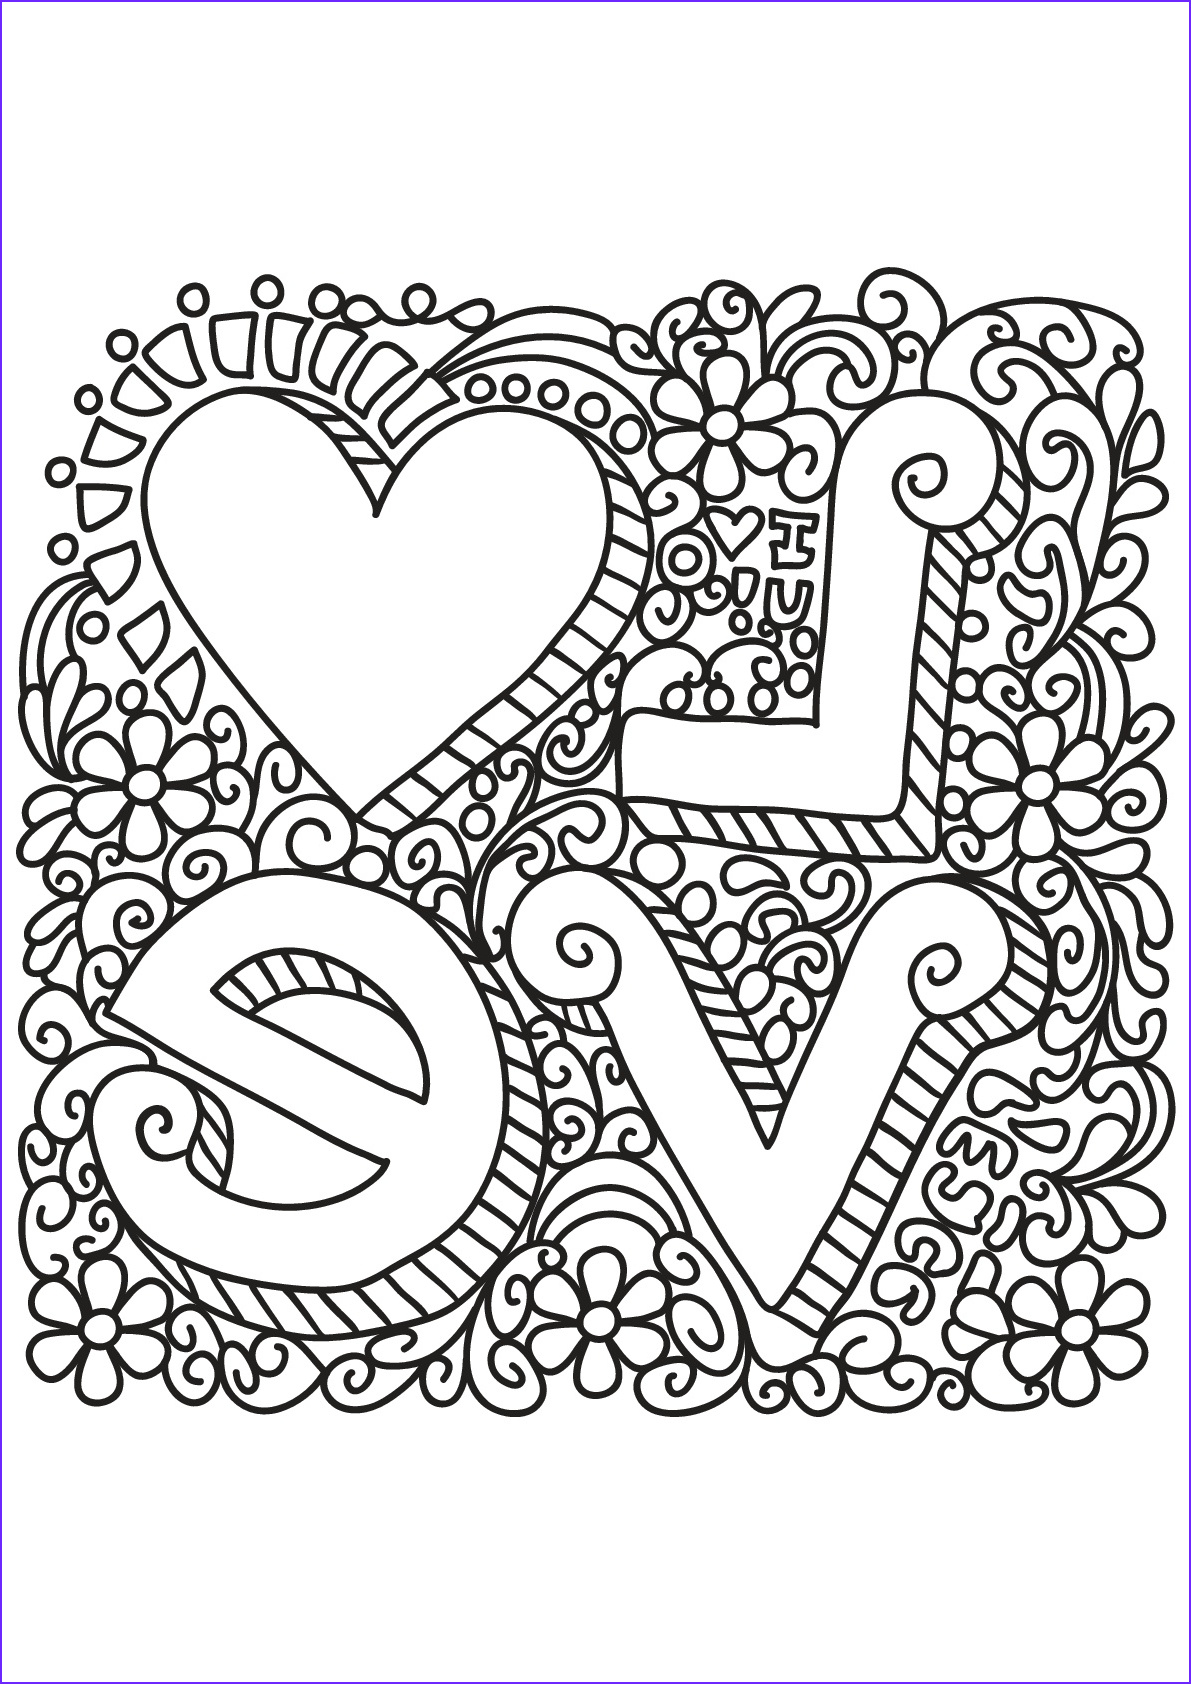 quotes image=quotes coloring free book quote 2 1